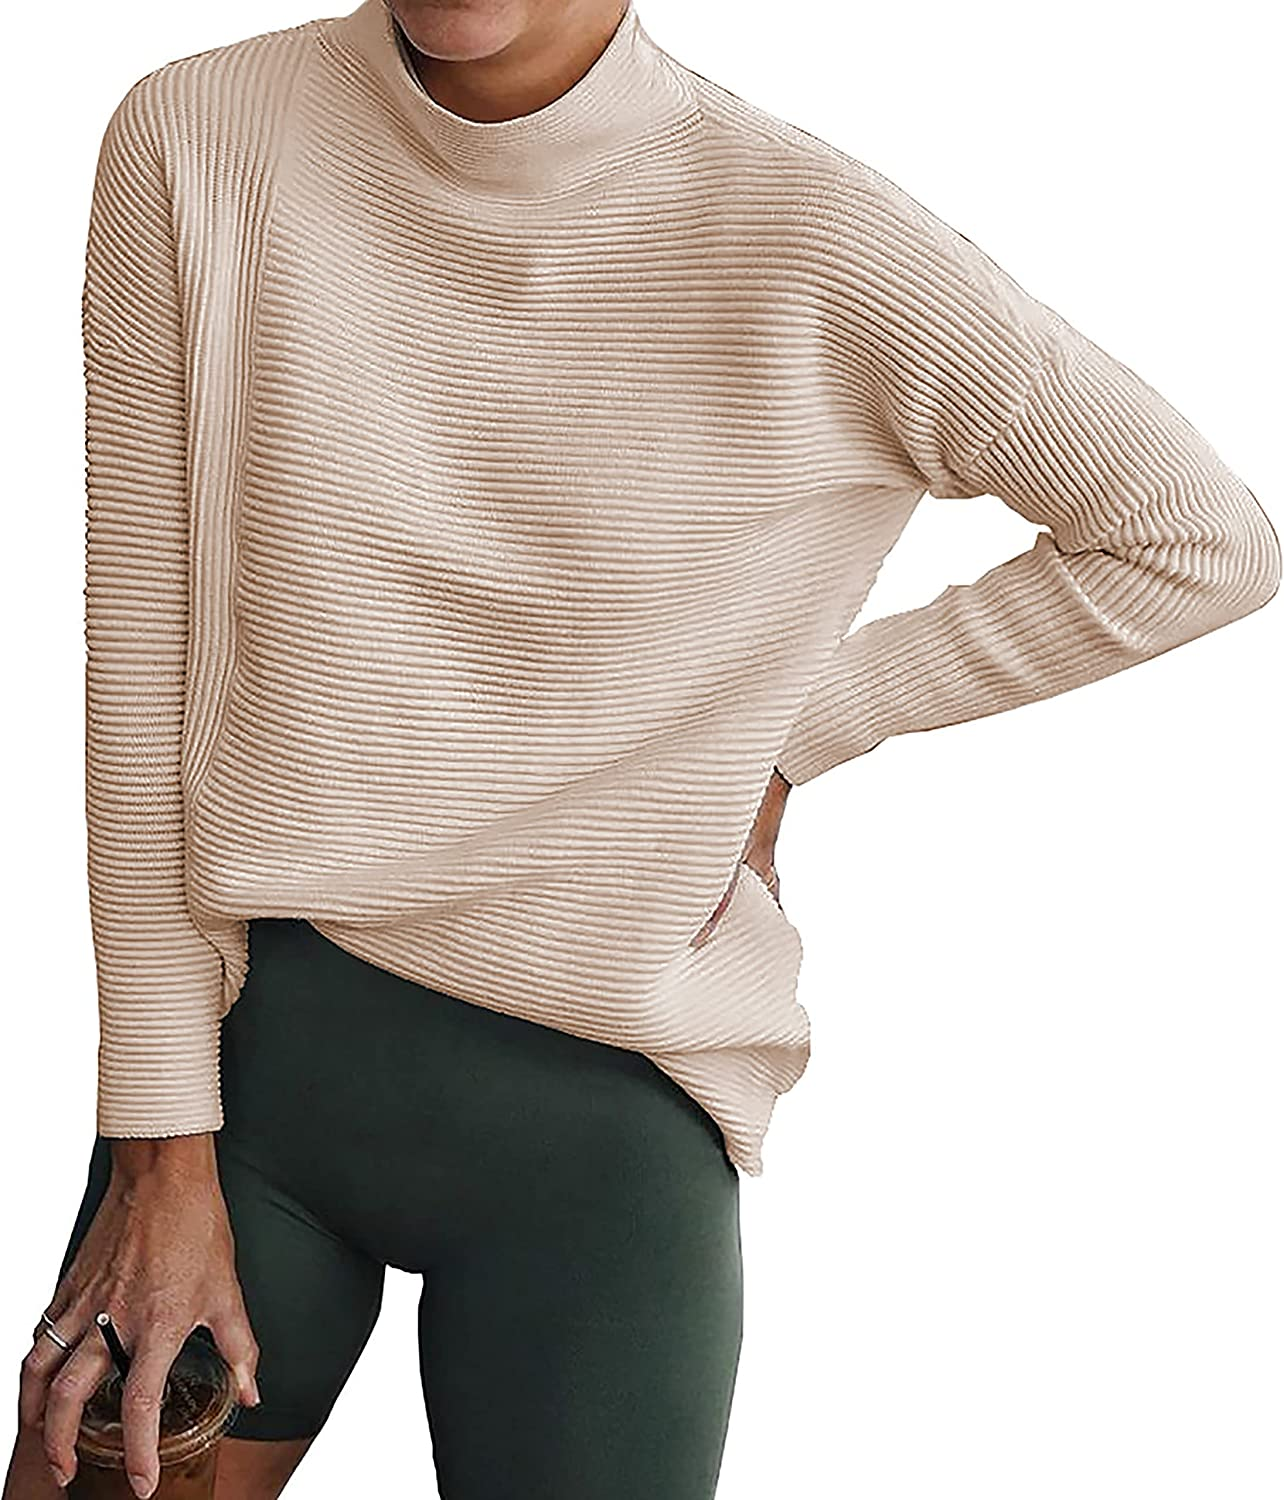 BTFBM Women Cozy Long Sleeve Turtleneck Fashion Sweaters Soft Solid Color Ribbed Knitted Casual Winter Pullover Sweater